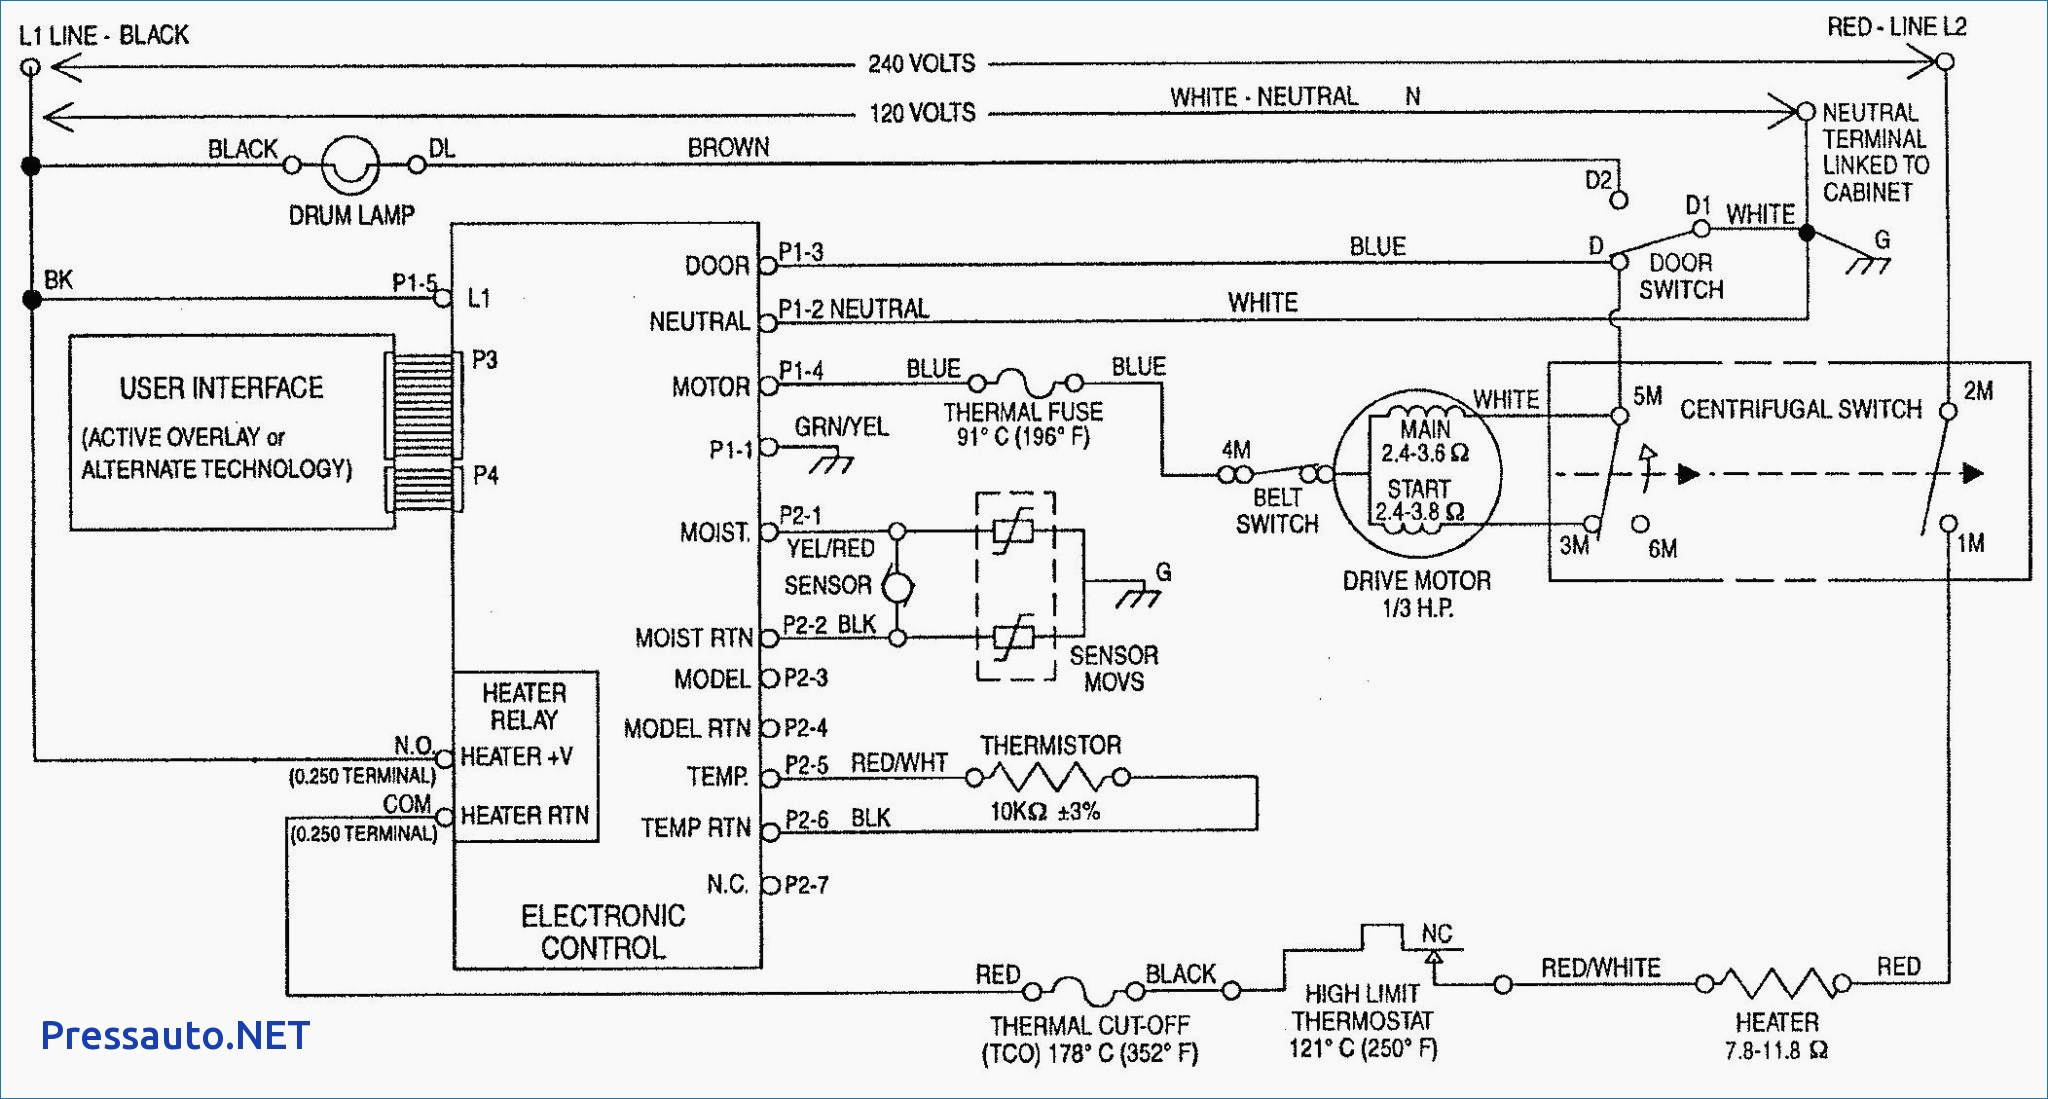 Wiring Diagram Headlights - Deltagenerali - Electric Furnace Wiring Diagram